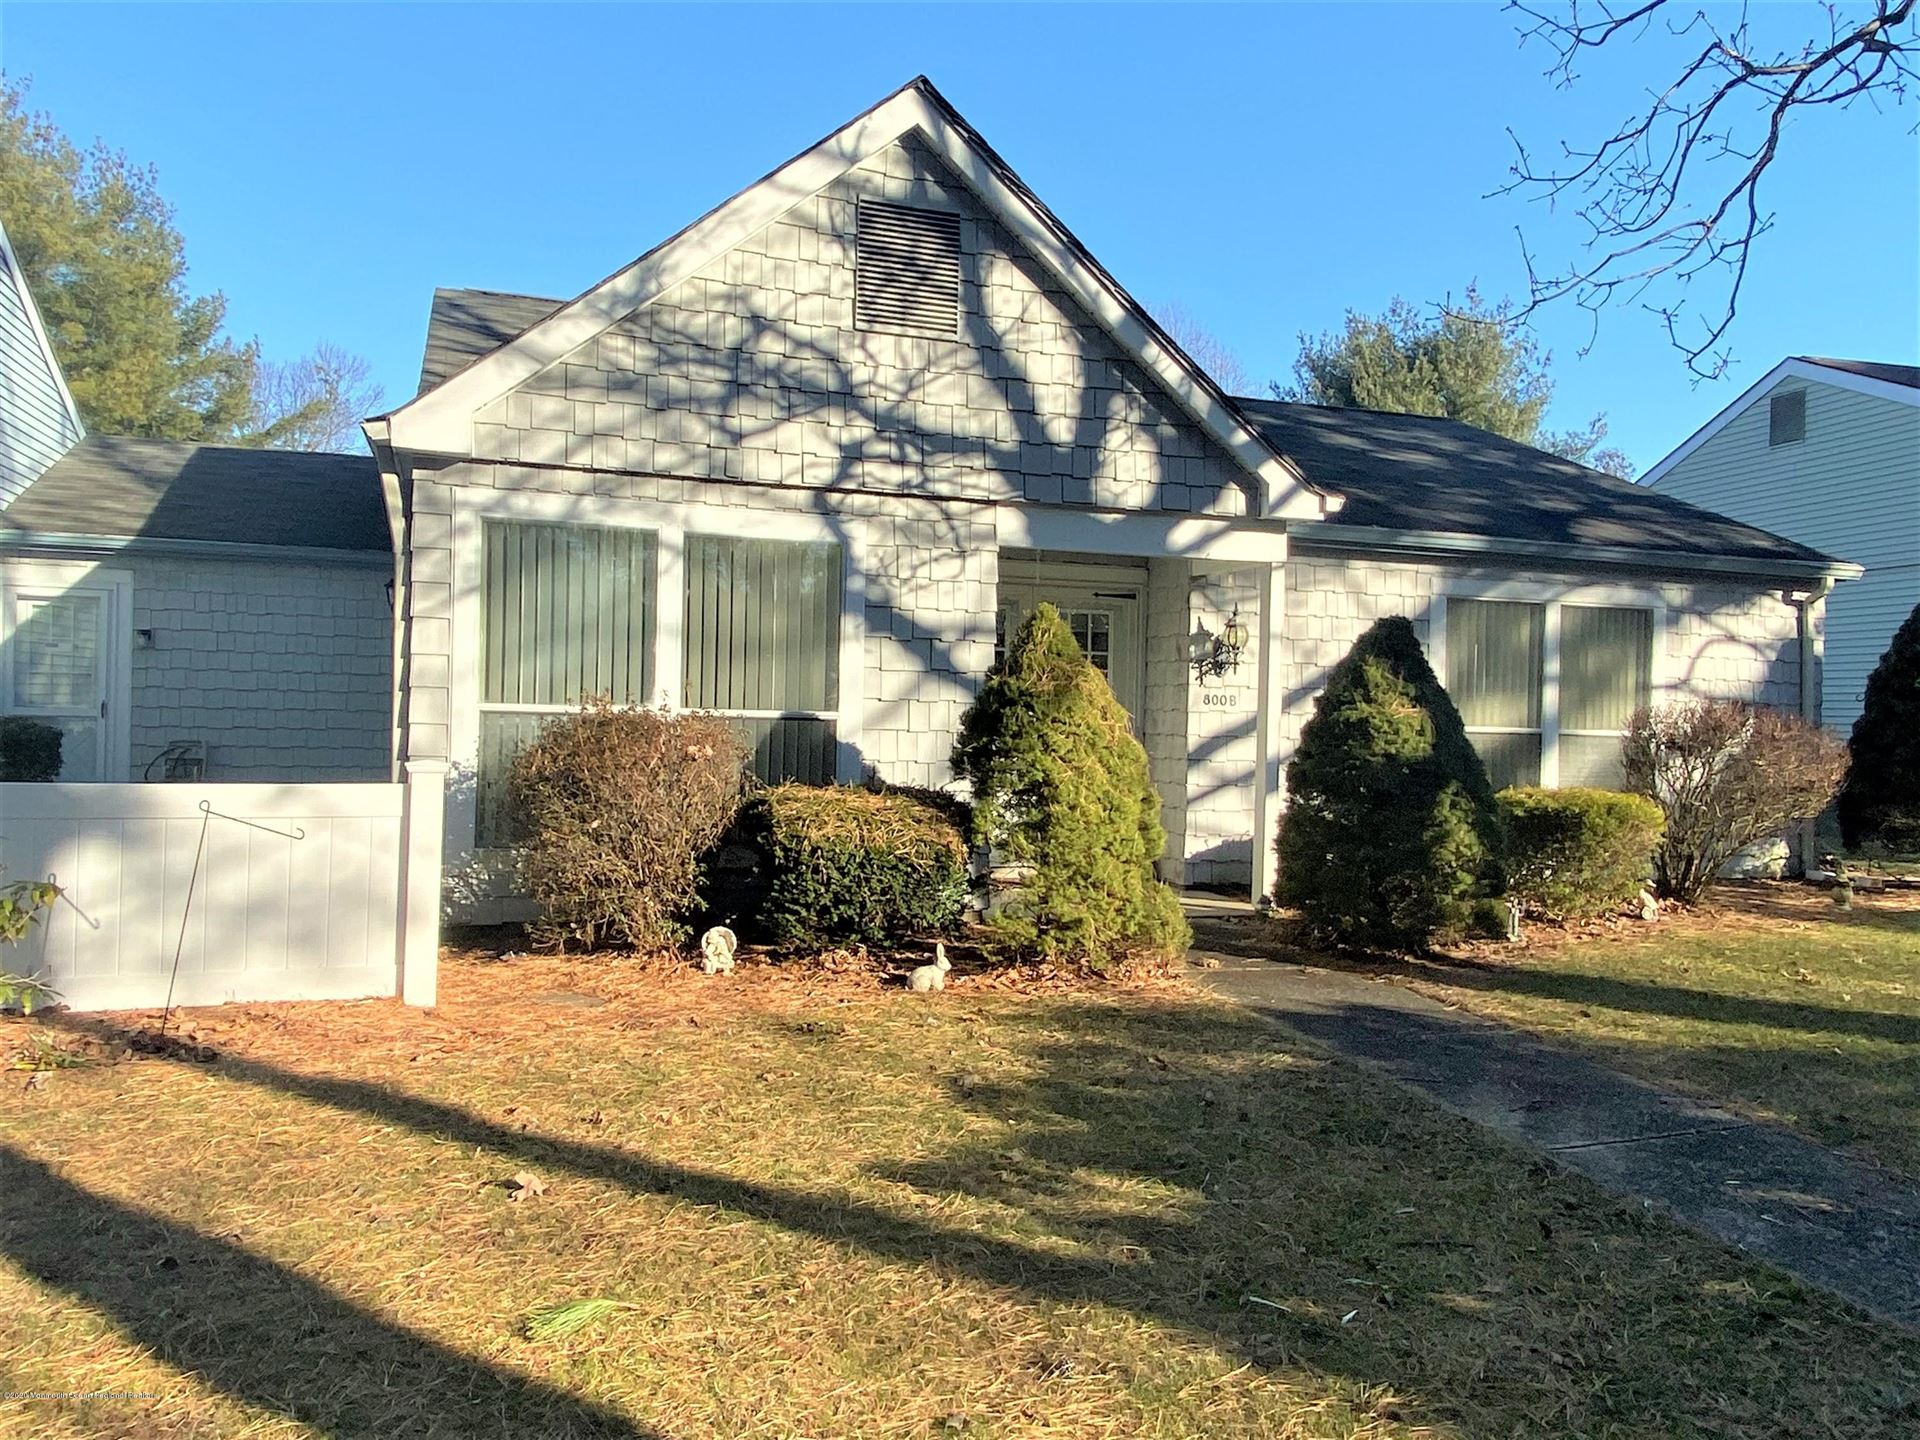 800B Westminster Court, Manchester Township, NJ 08759 - #: 22002881